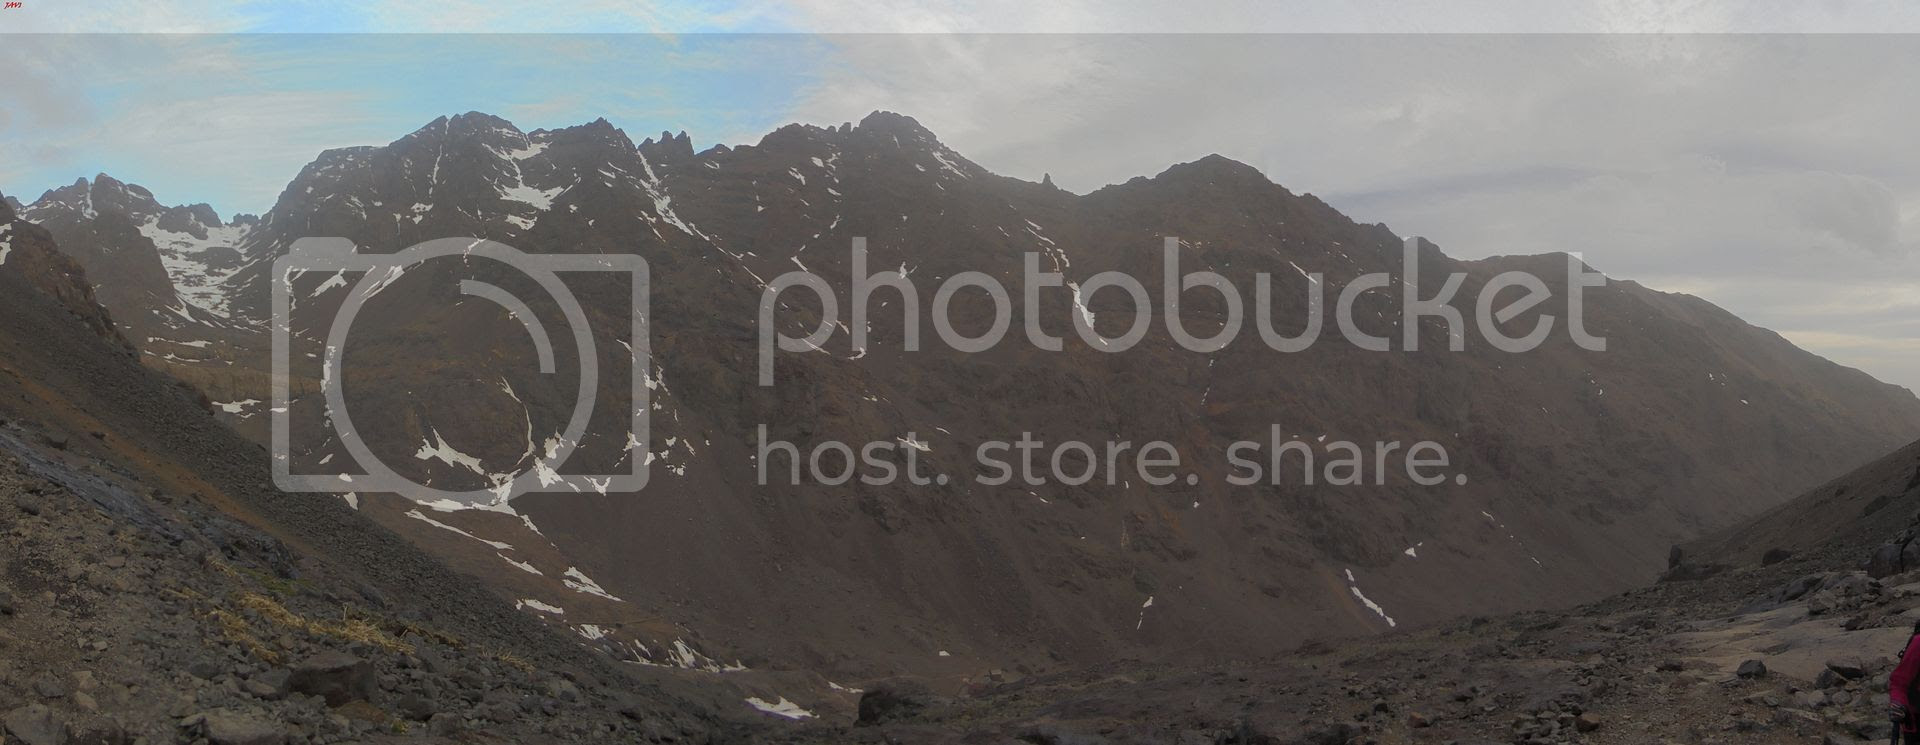 photo Group 21-TOUBKAL 2016 189_TOUBKAL 2016 194-6 images_zpsamfq9c8z.jpg